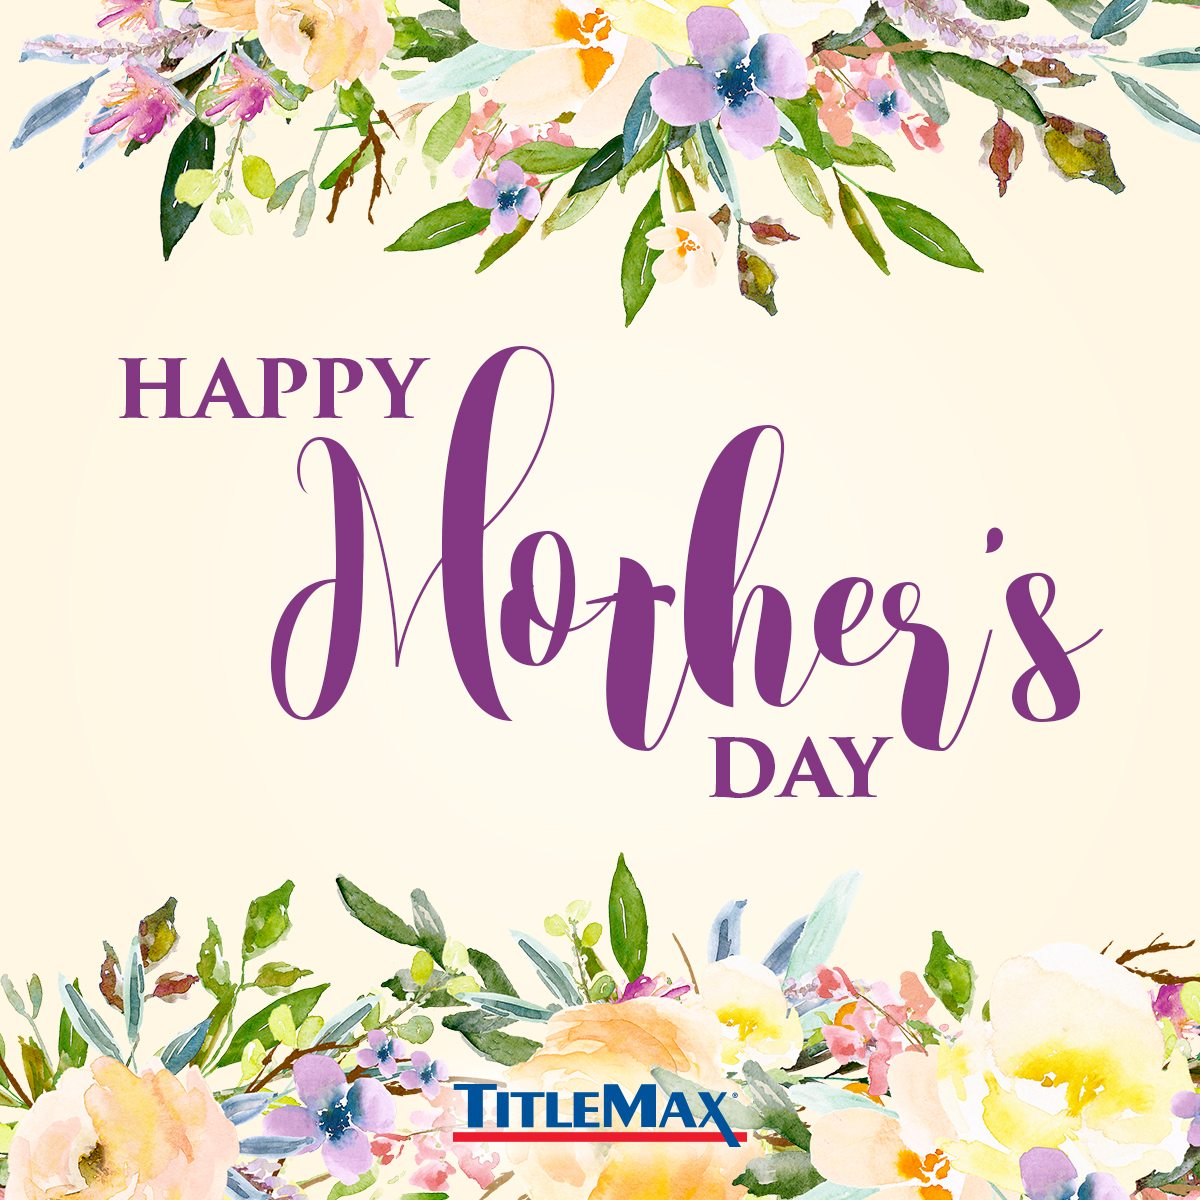 Happy Mother's Day from TitleMax!